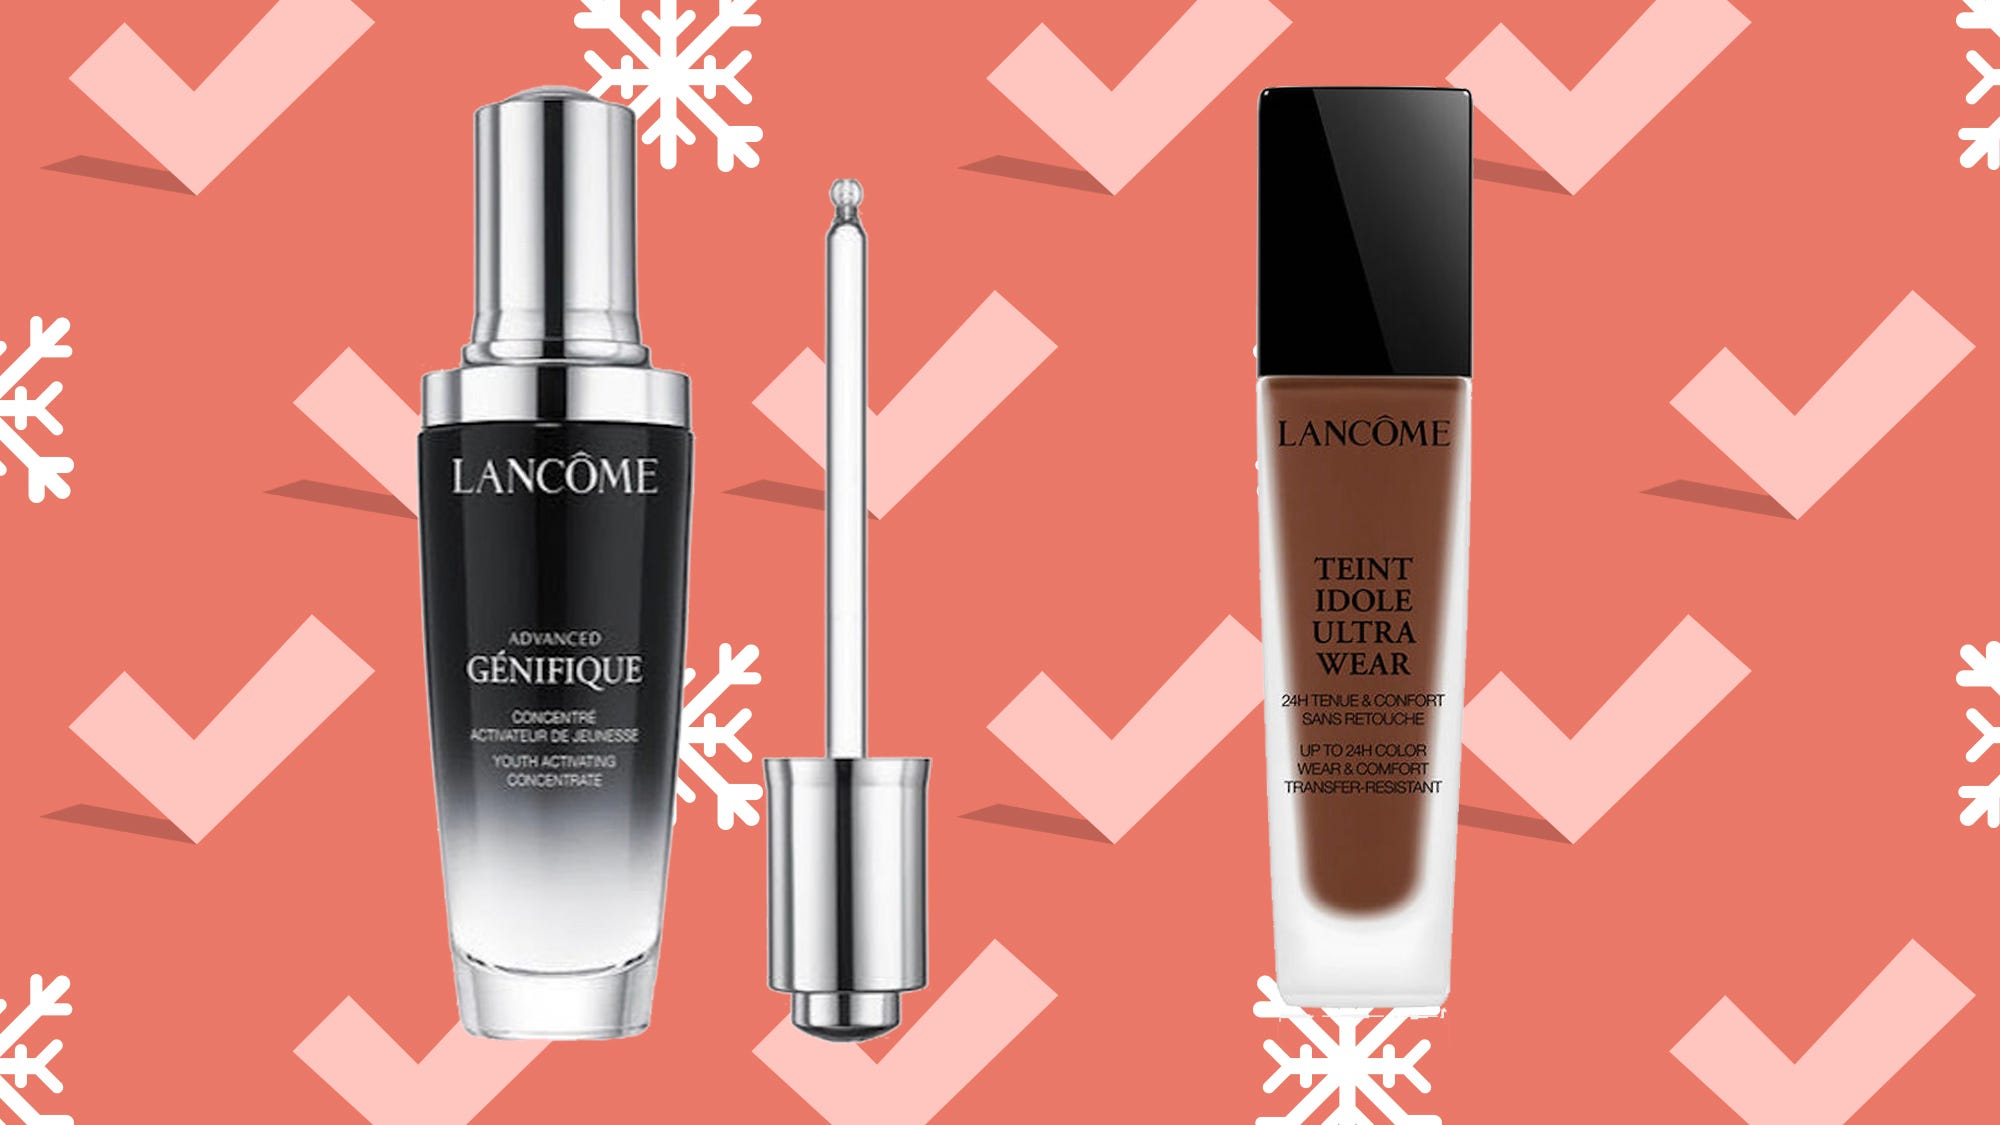 Almost everything at Lancôme is on sale right now for the Friends and Family event